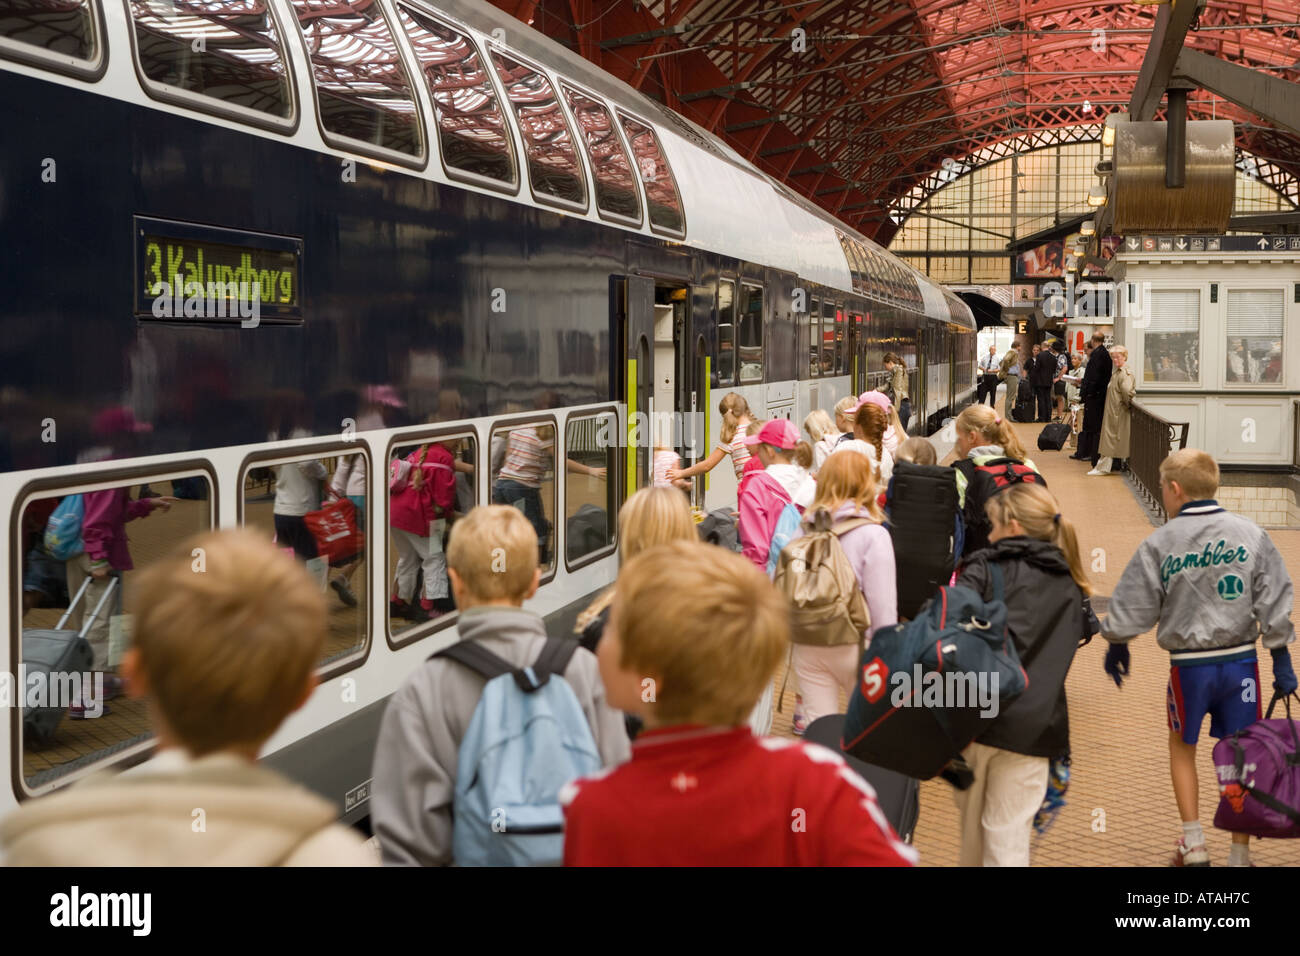 Copenhagen Denmark Passengers boarding train from platform in central railway station - Stock Image